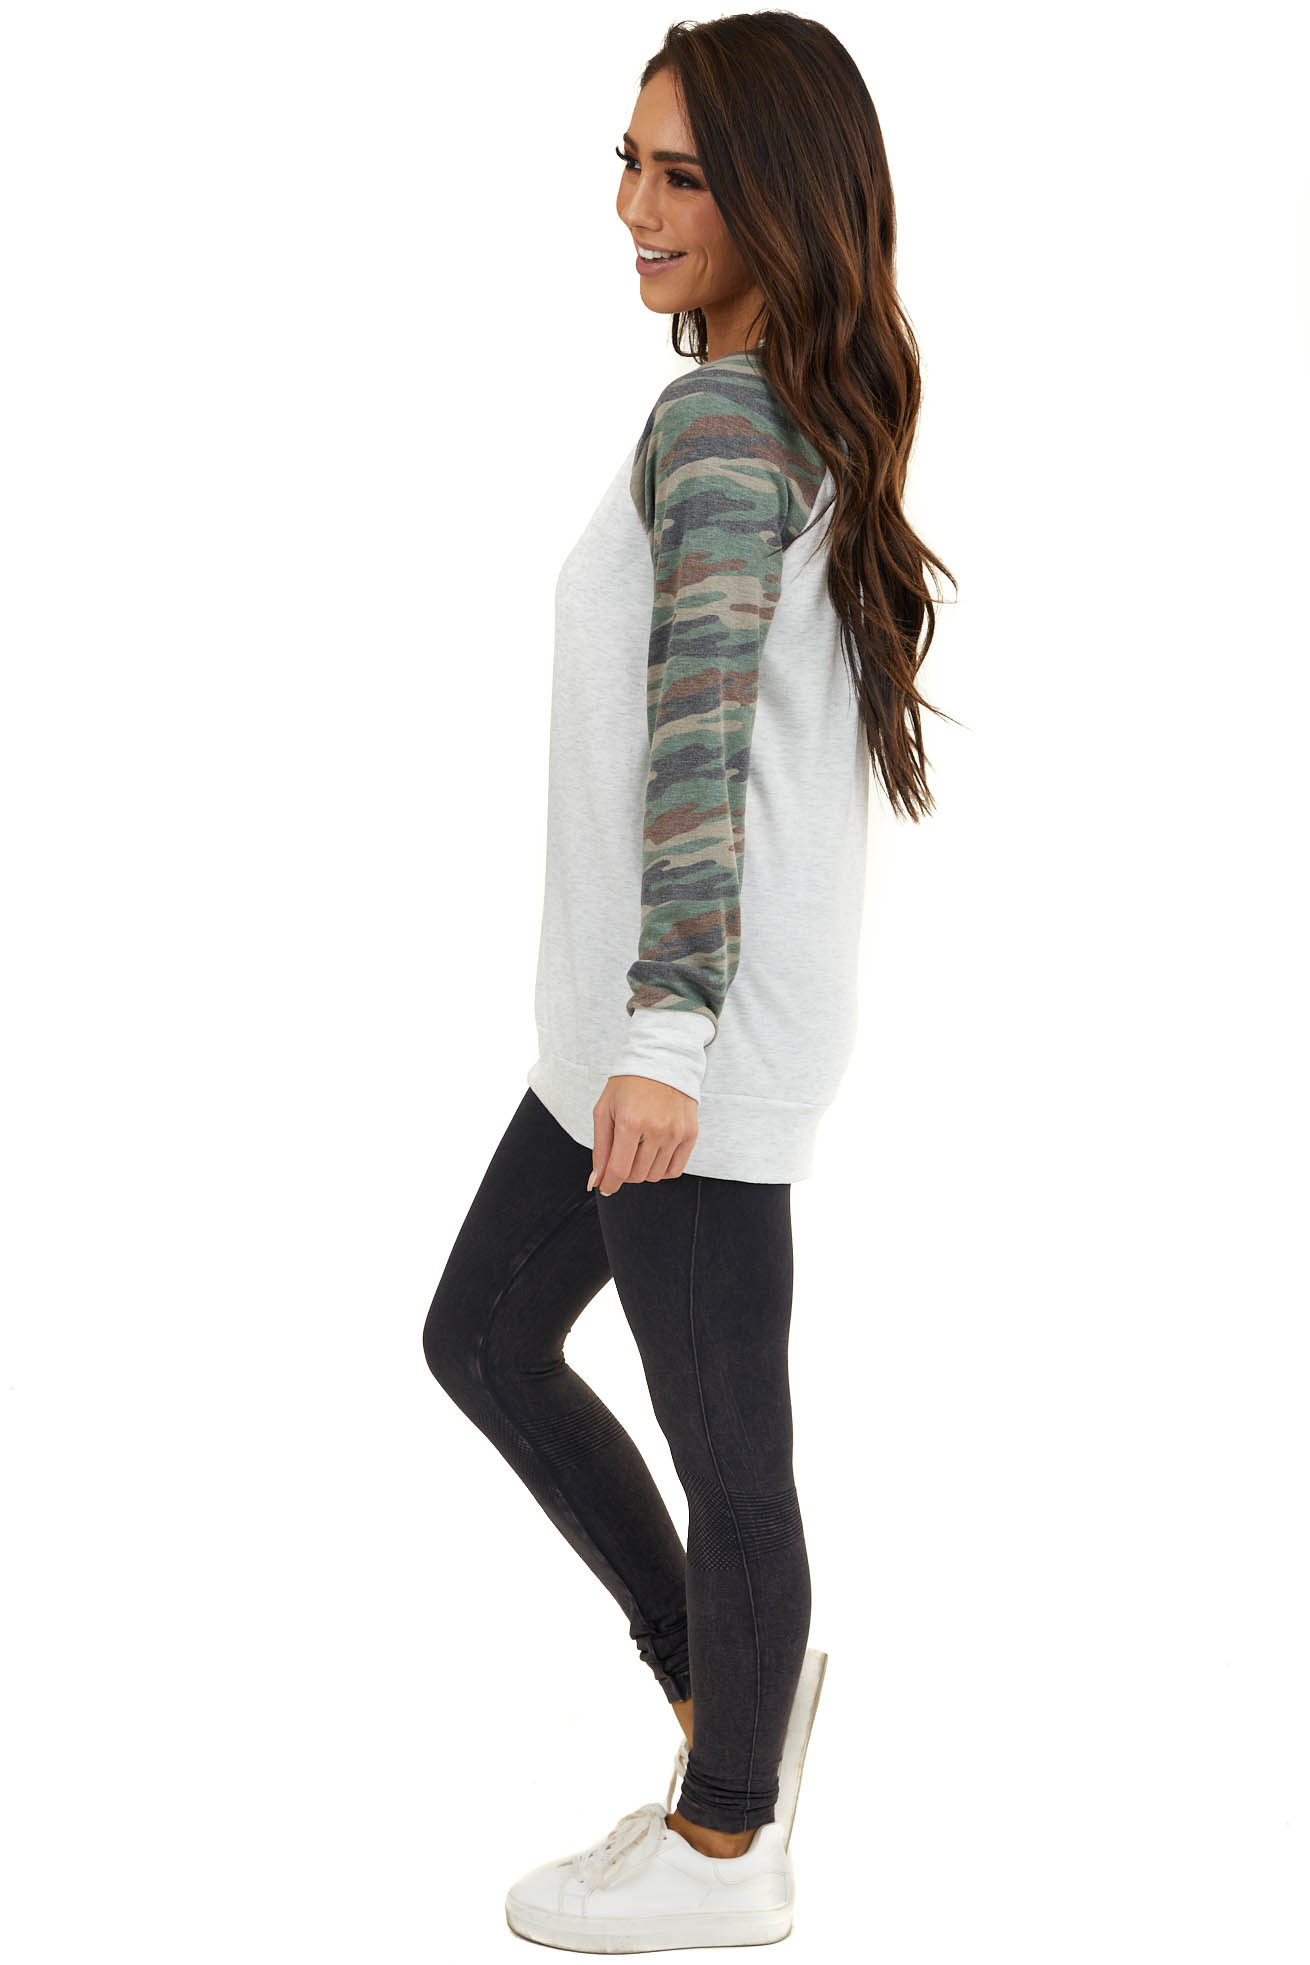 Light Grey French Terry Knit Top with Camo Contrast Sleeves